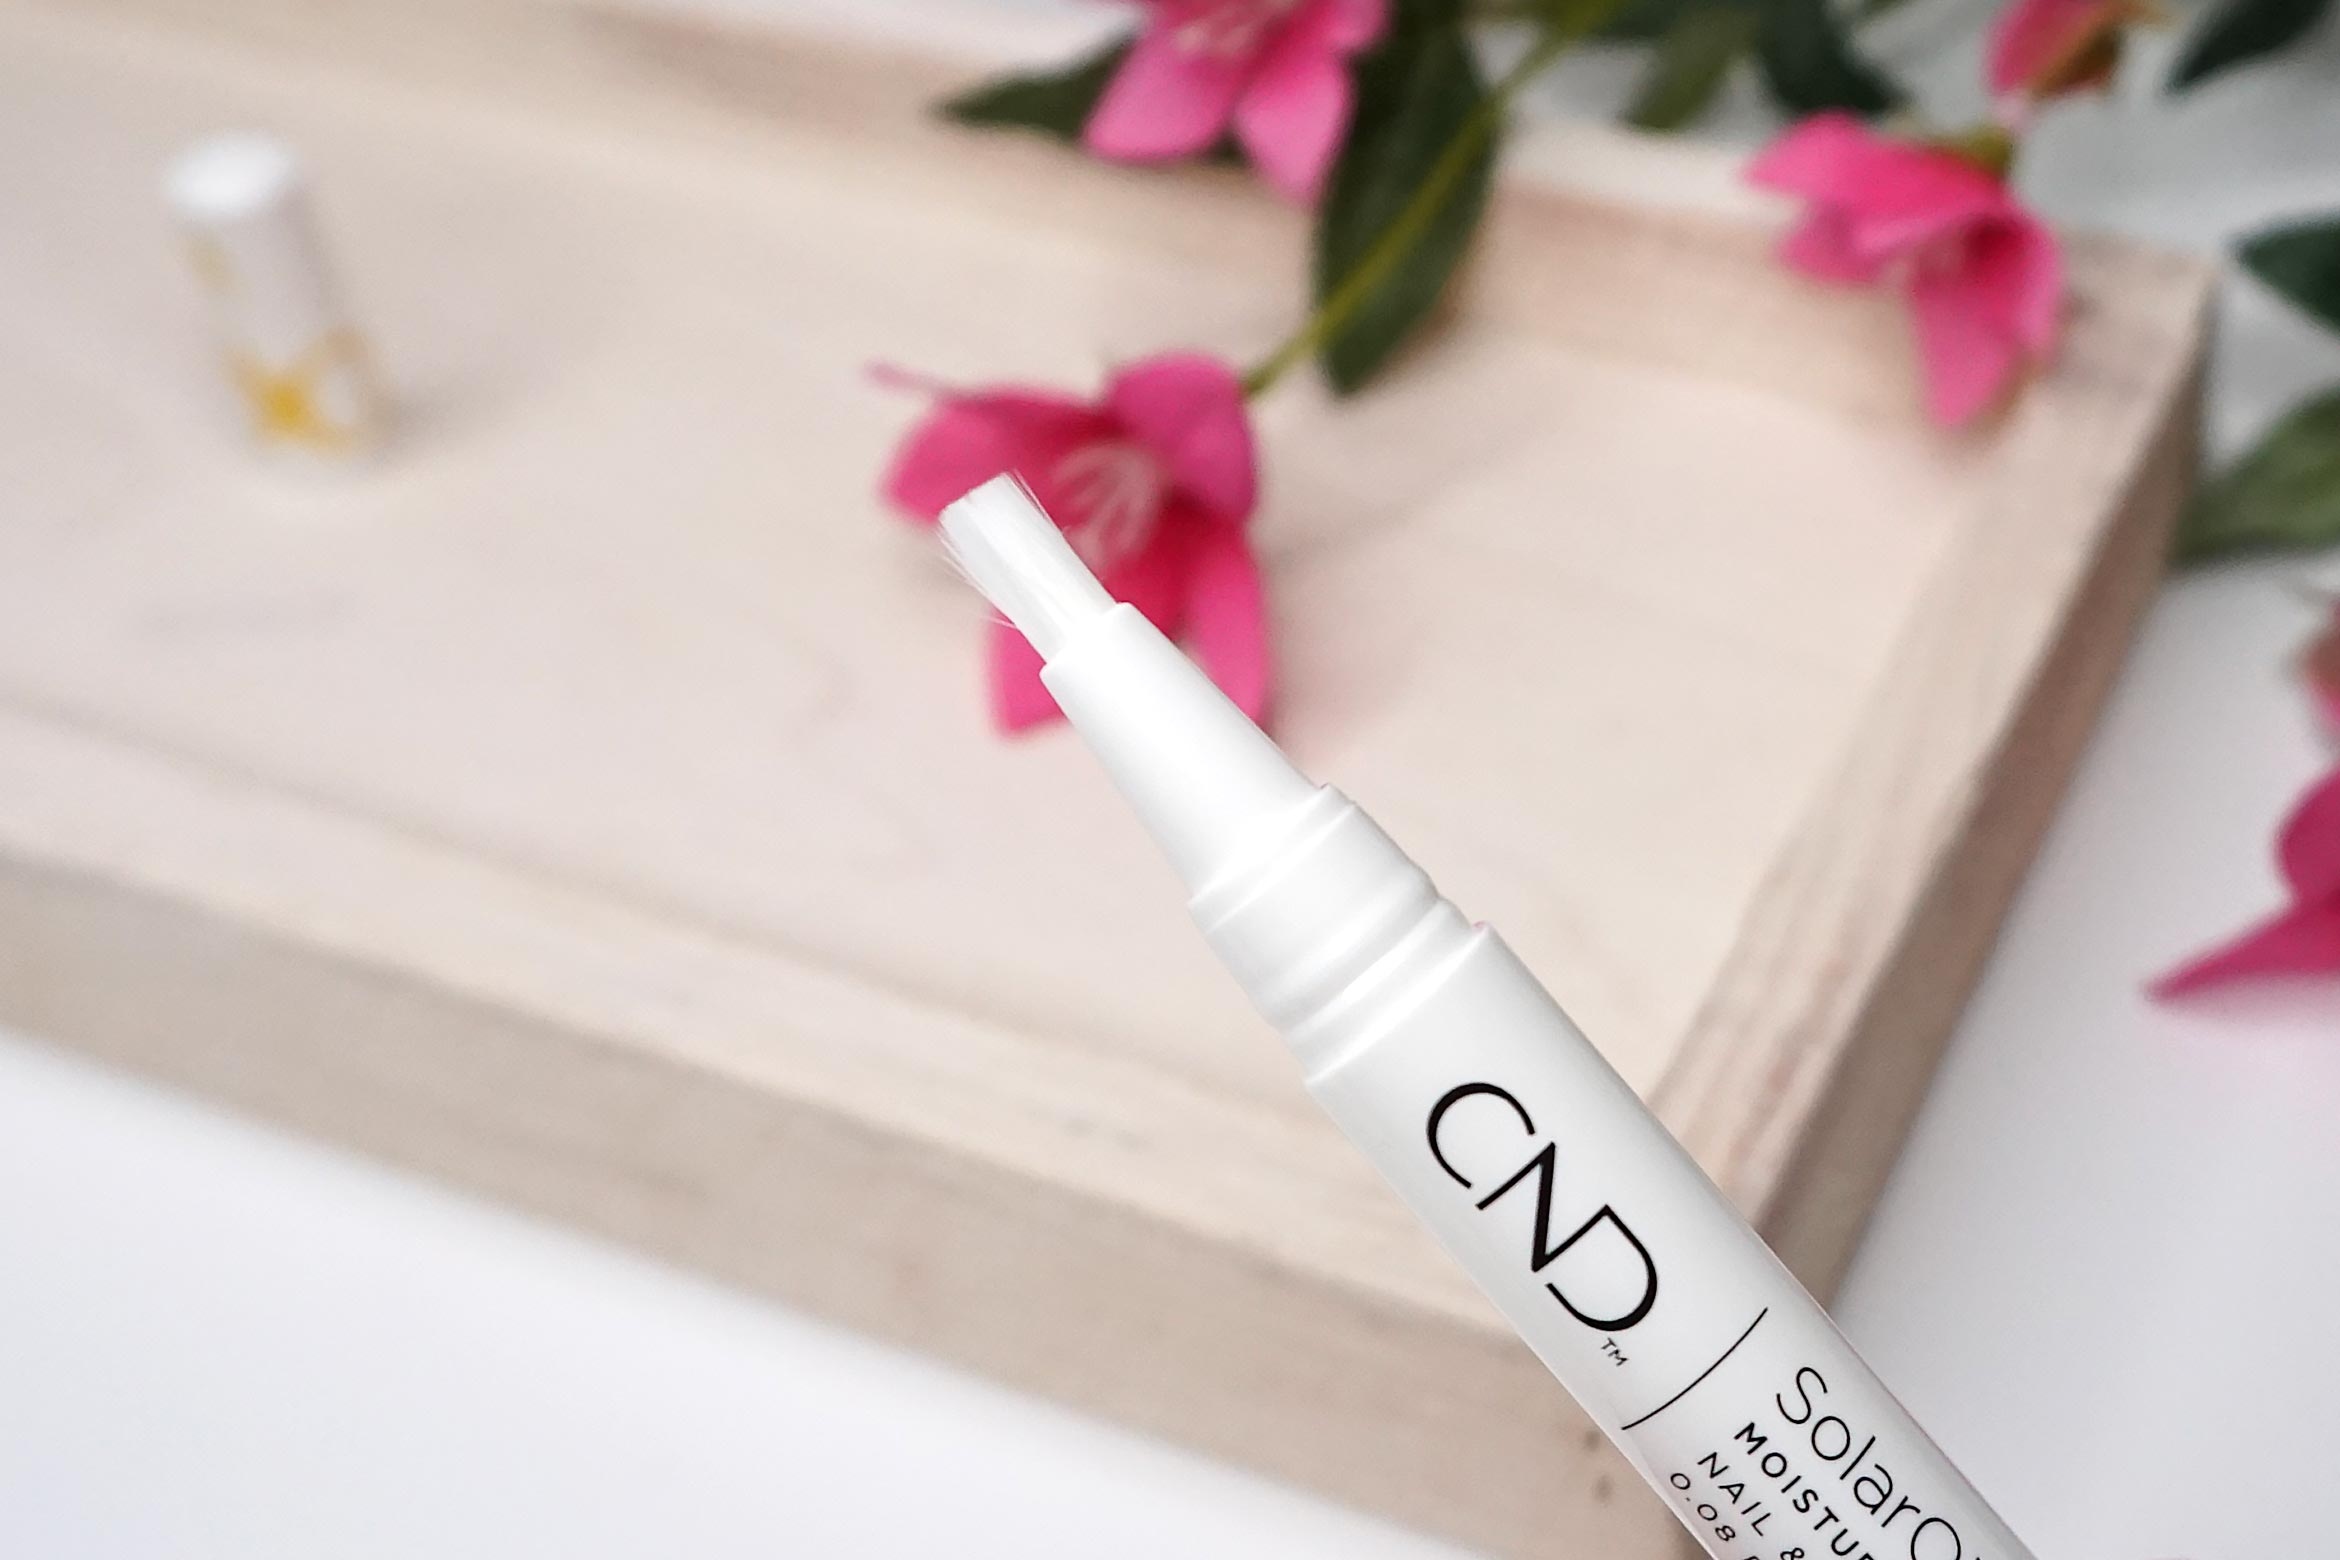 CND-solaroil-Nail-Cuticle-Care-Pen-review-2